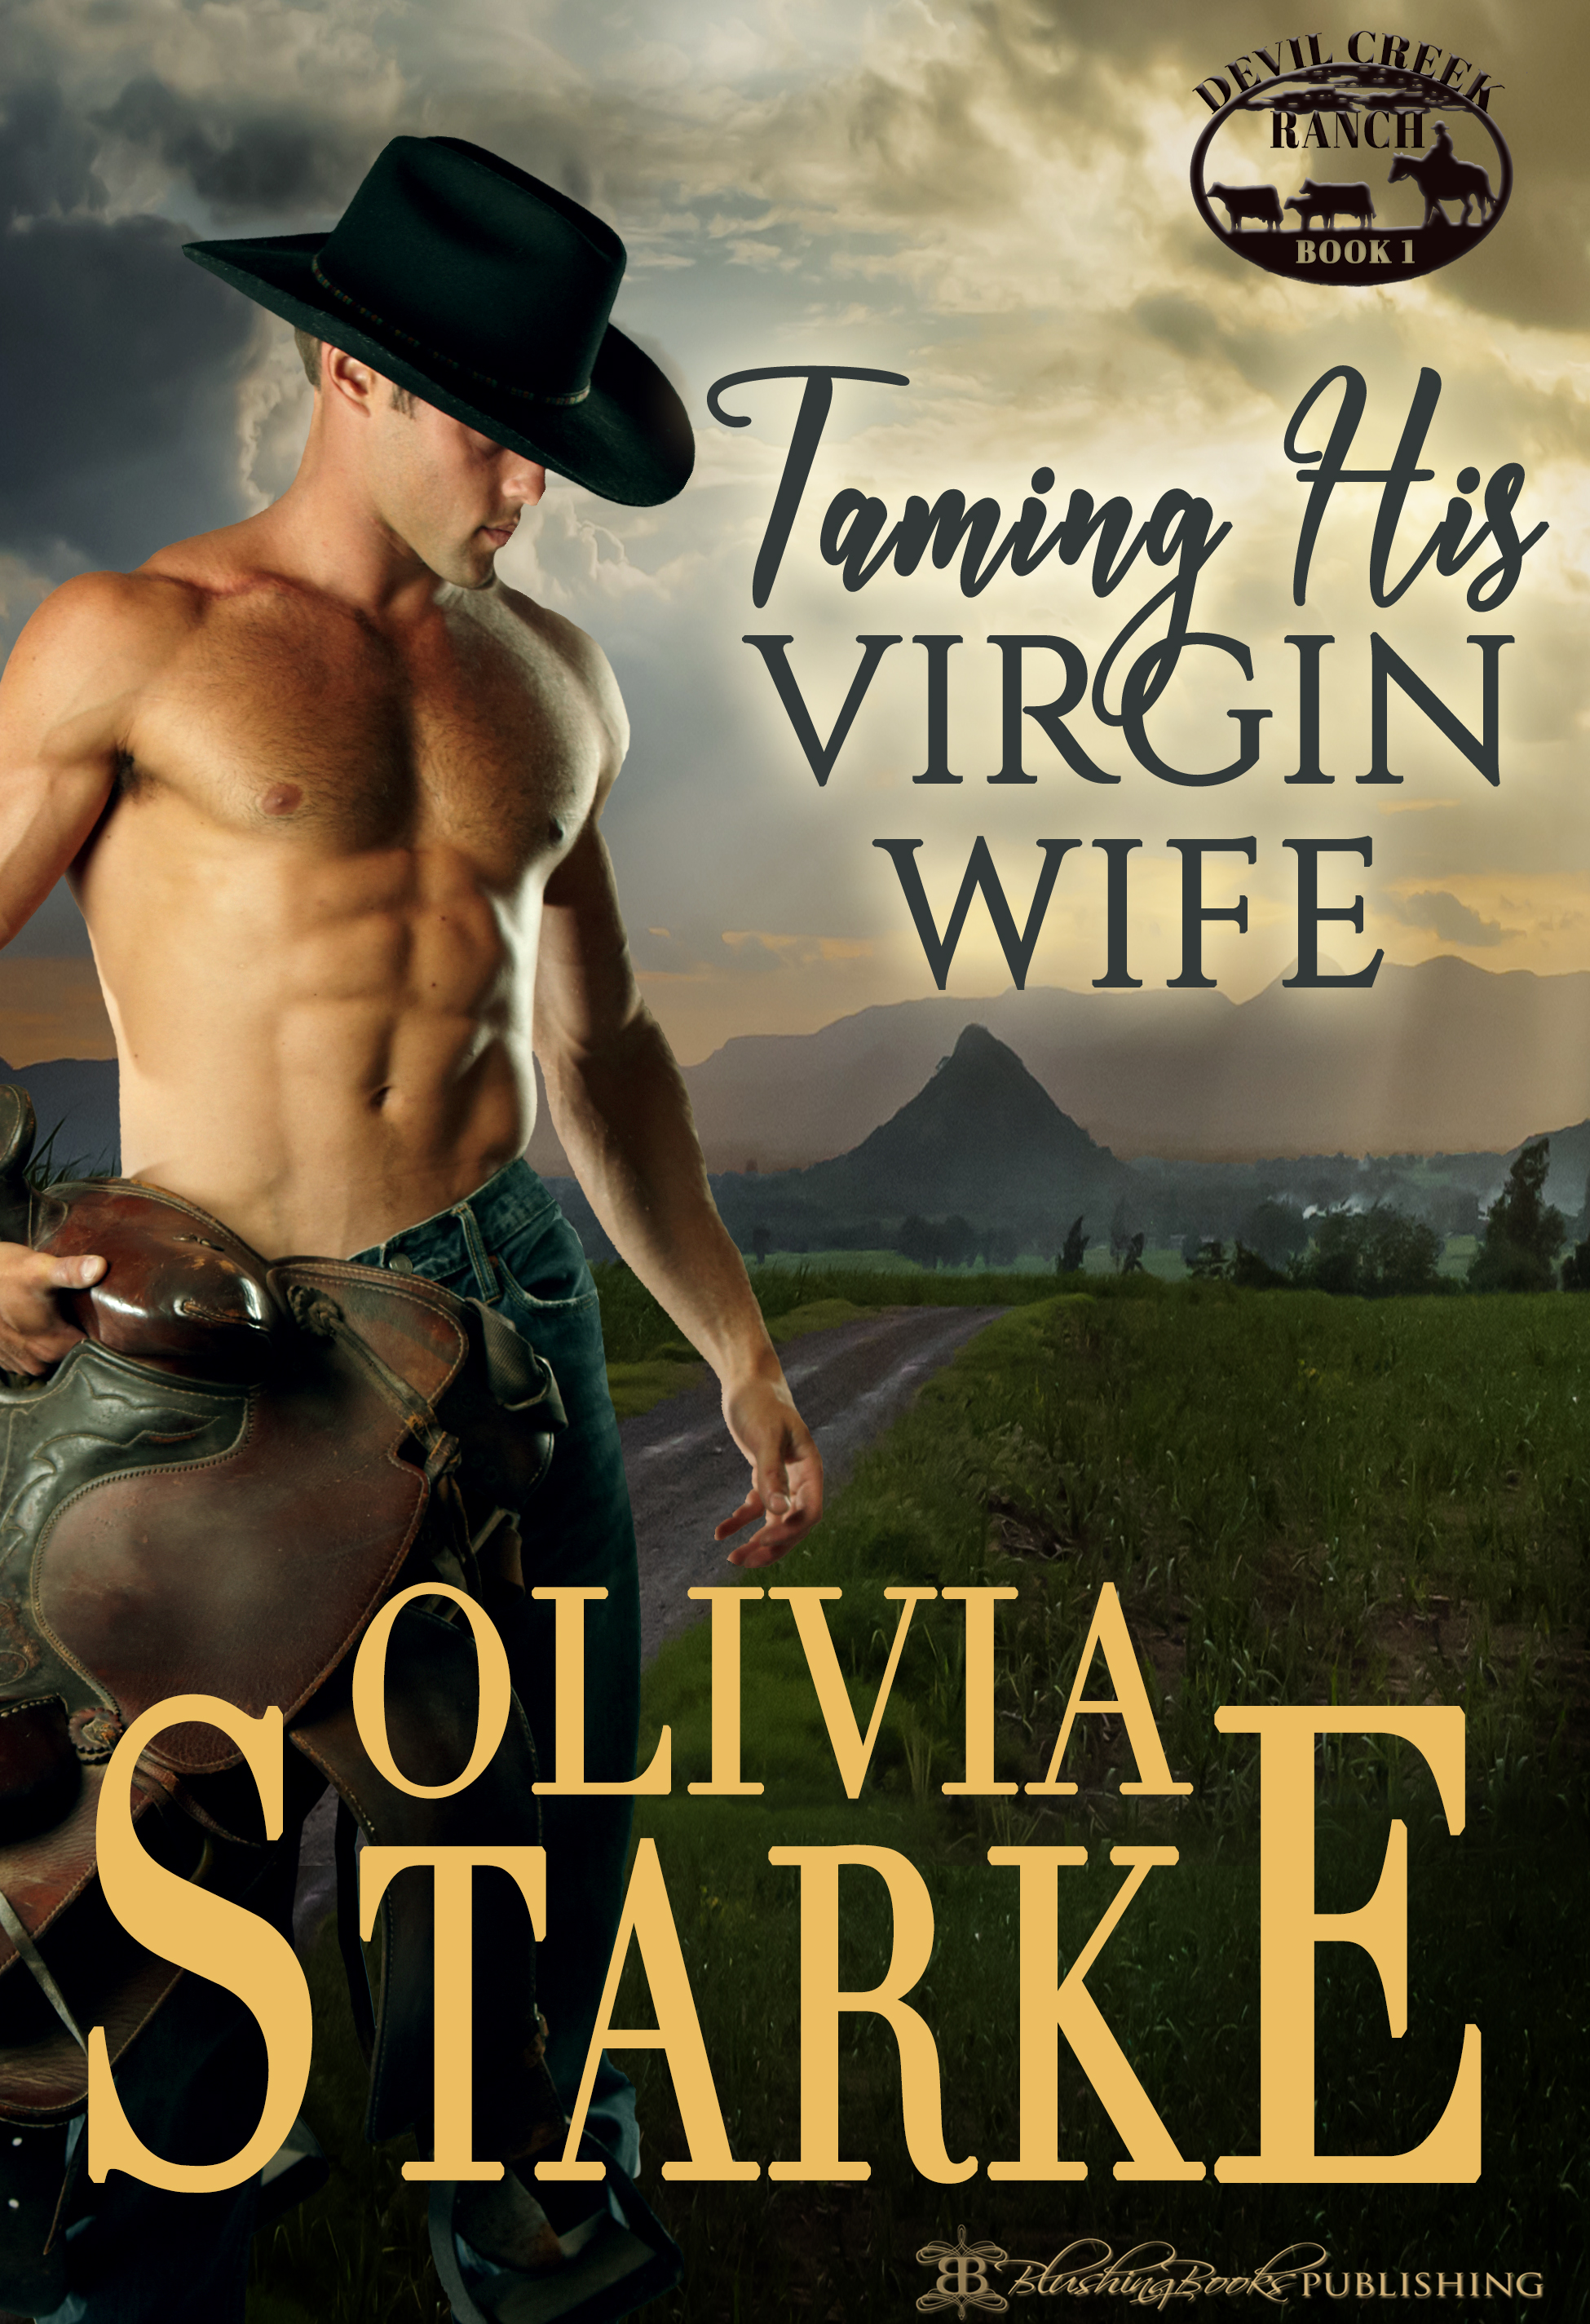 Taming His Virgin Wife - OS promo.jpg